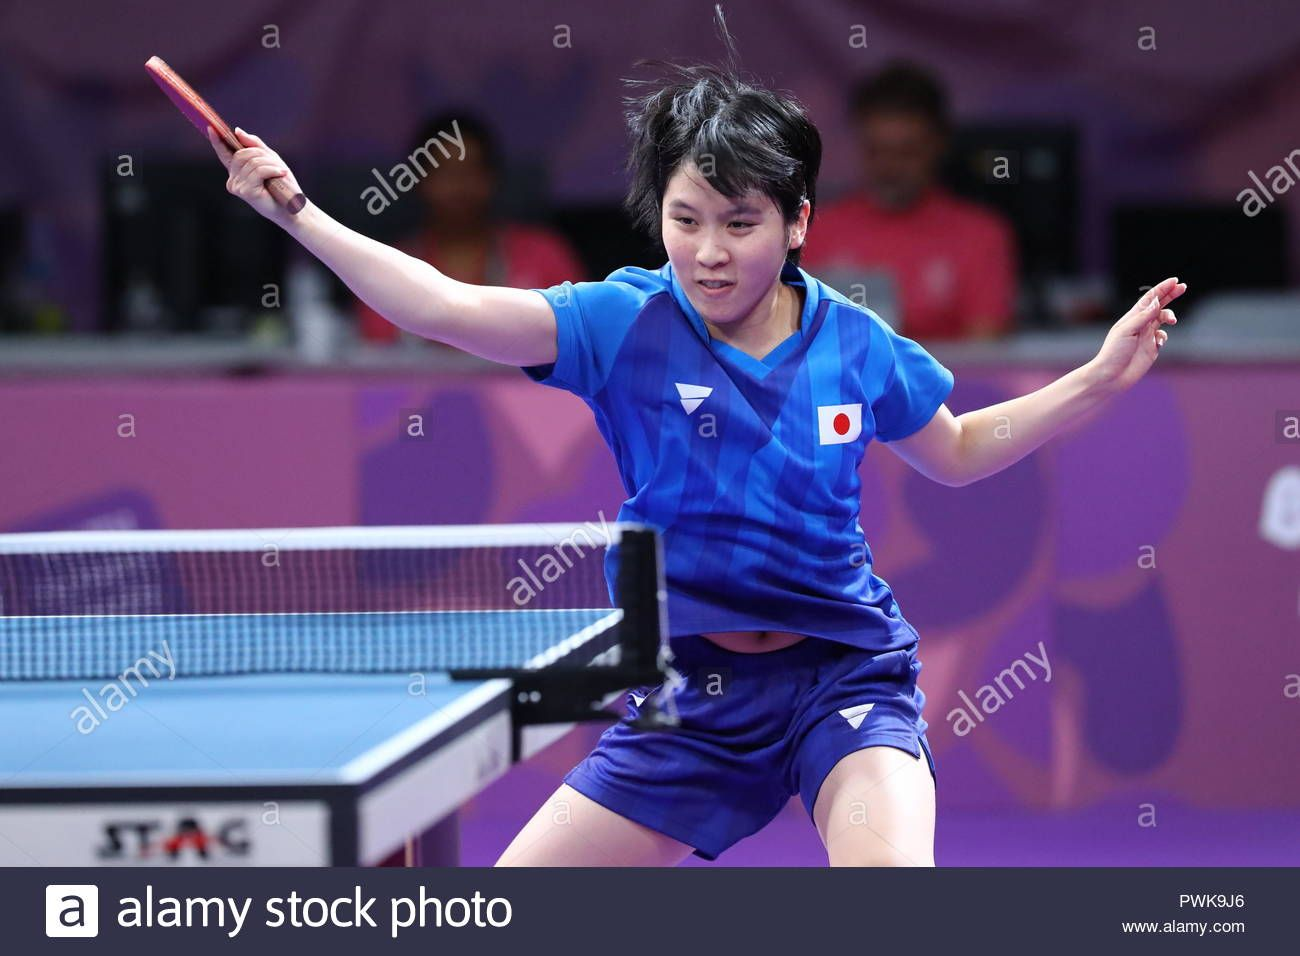 Download This Stock Image Buenos Aires Argentina 15th Oct 2018 Miu Hirano Jpn Table Tennis Mixed Youth Olympic Games Olympic Games International Teams